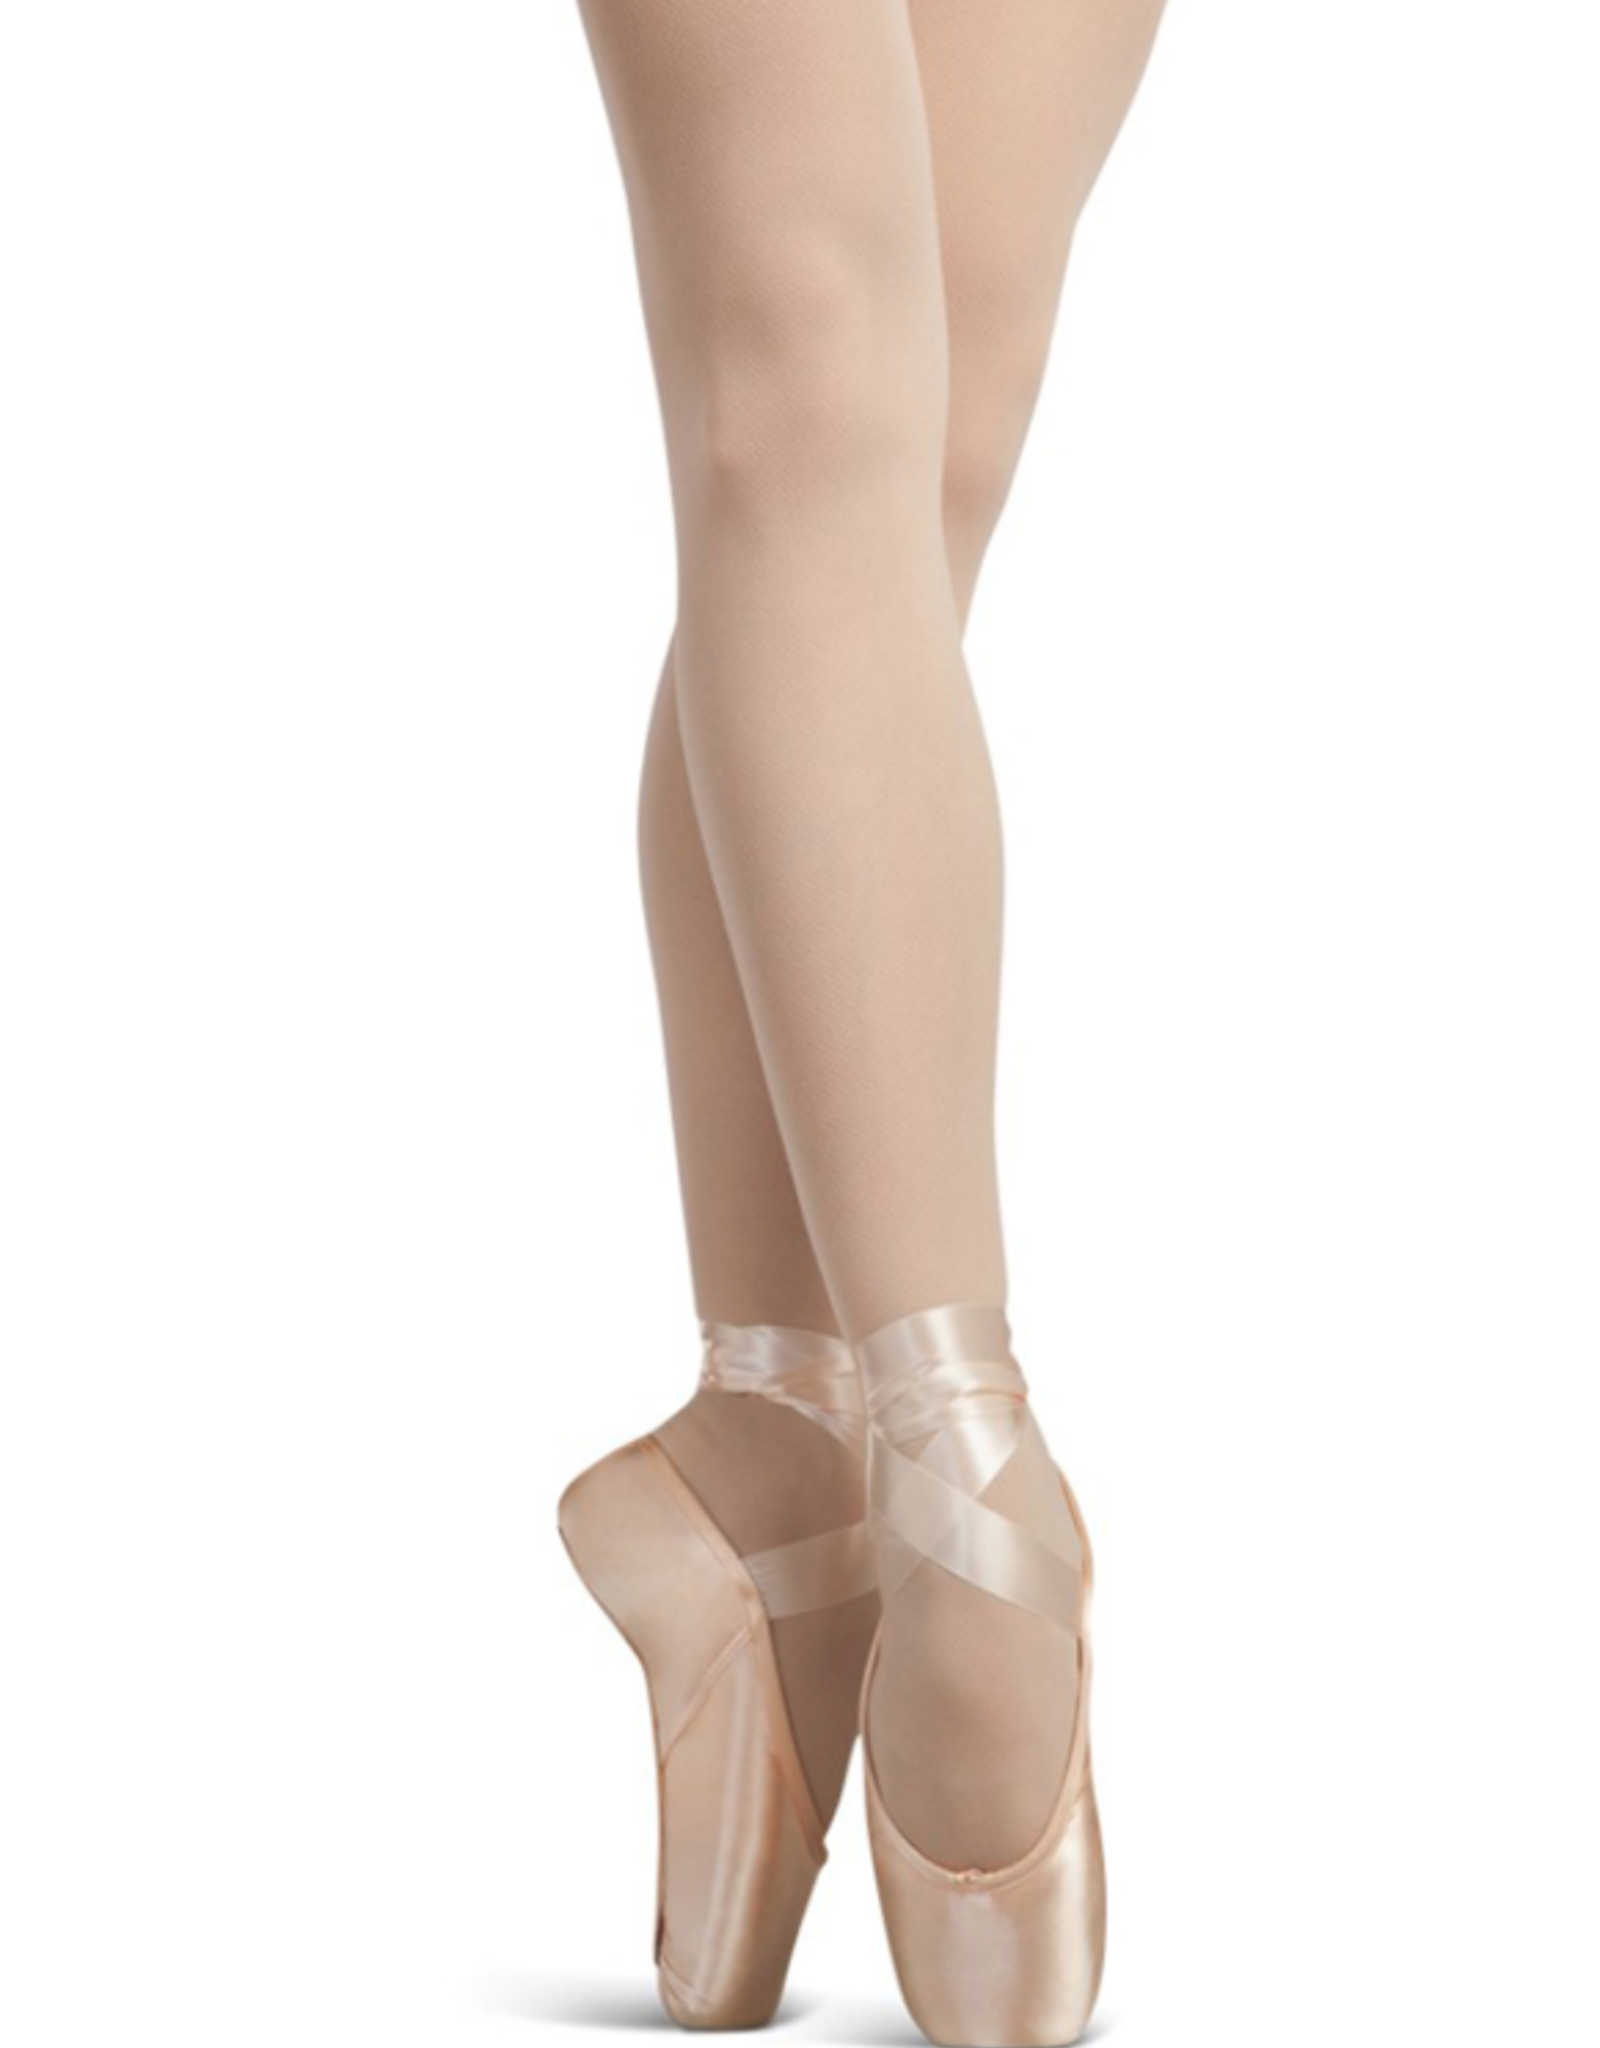 CAPEZIO PLIE ll POINTE SHOES (197)